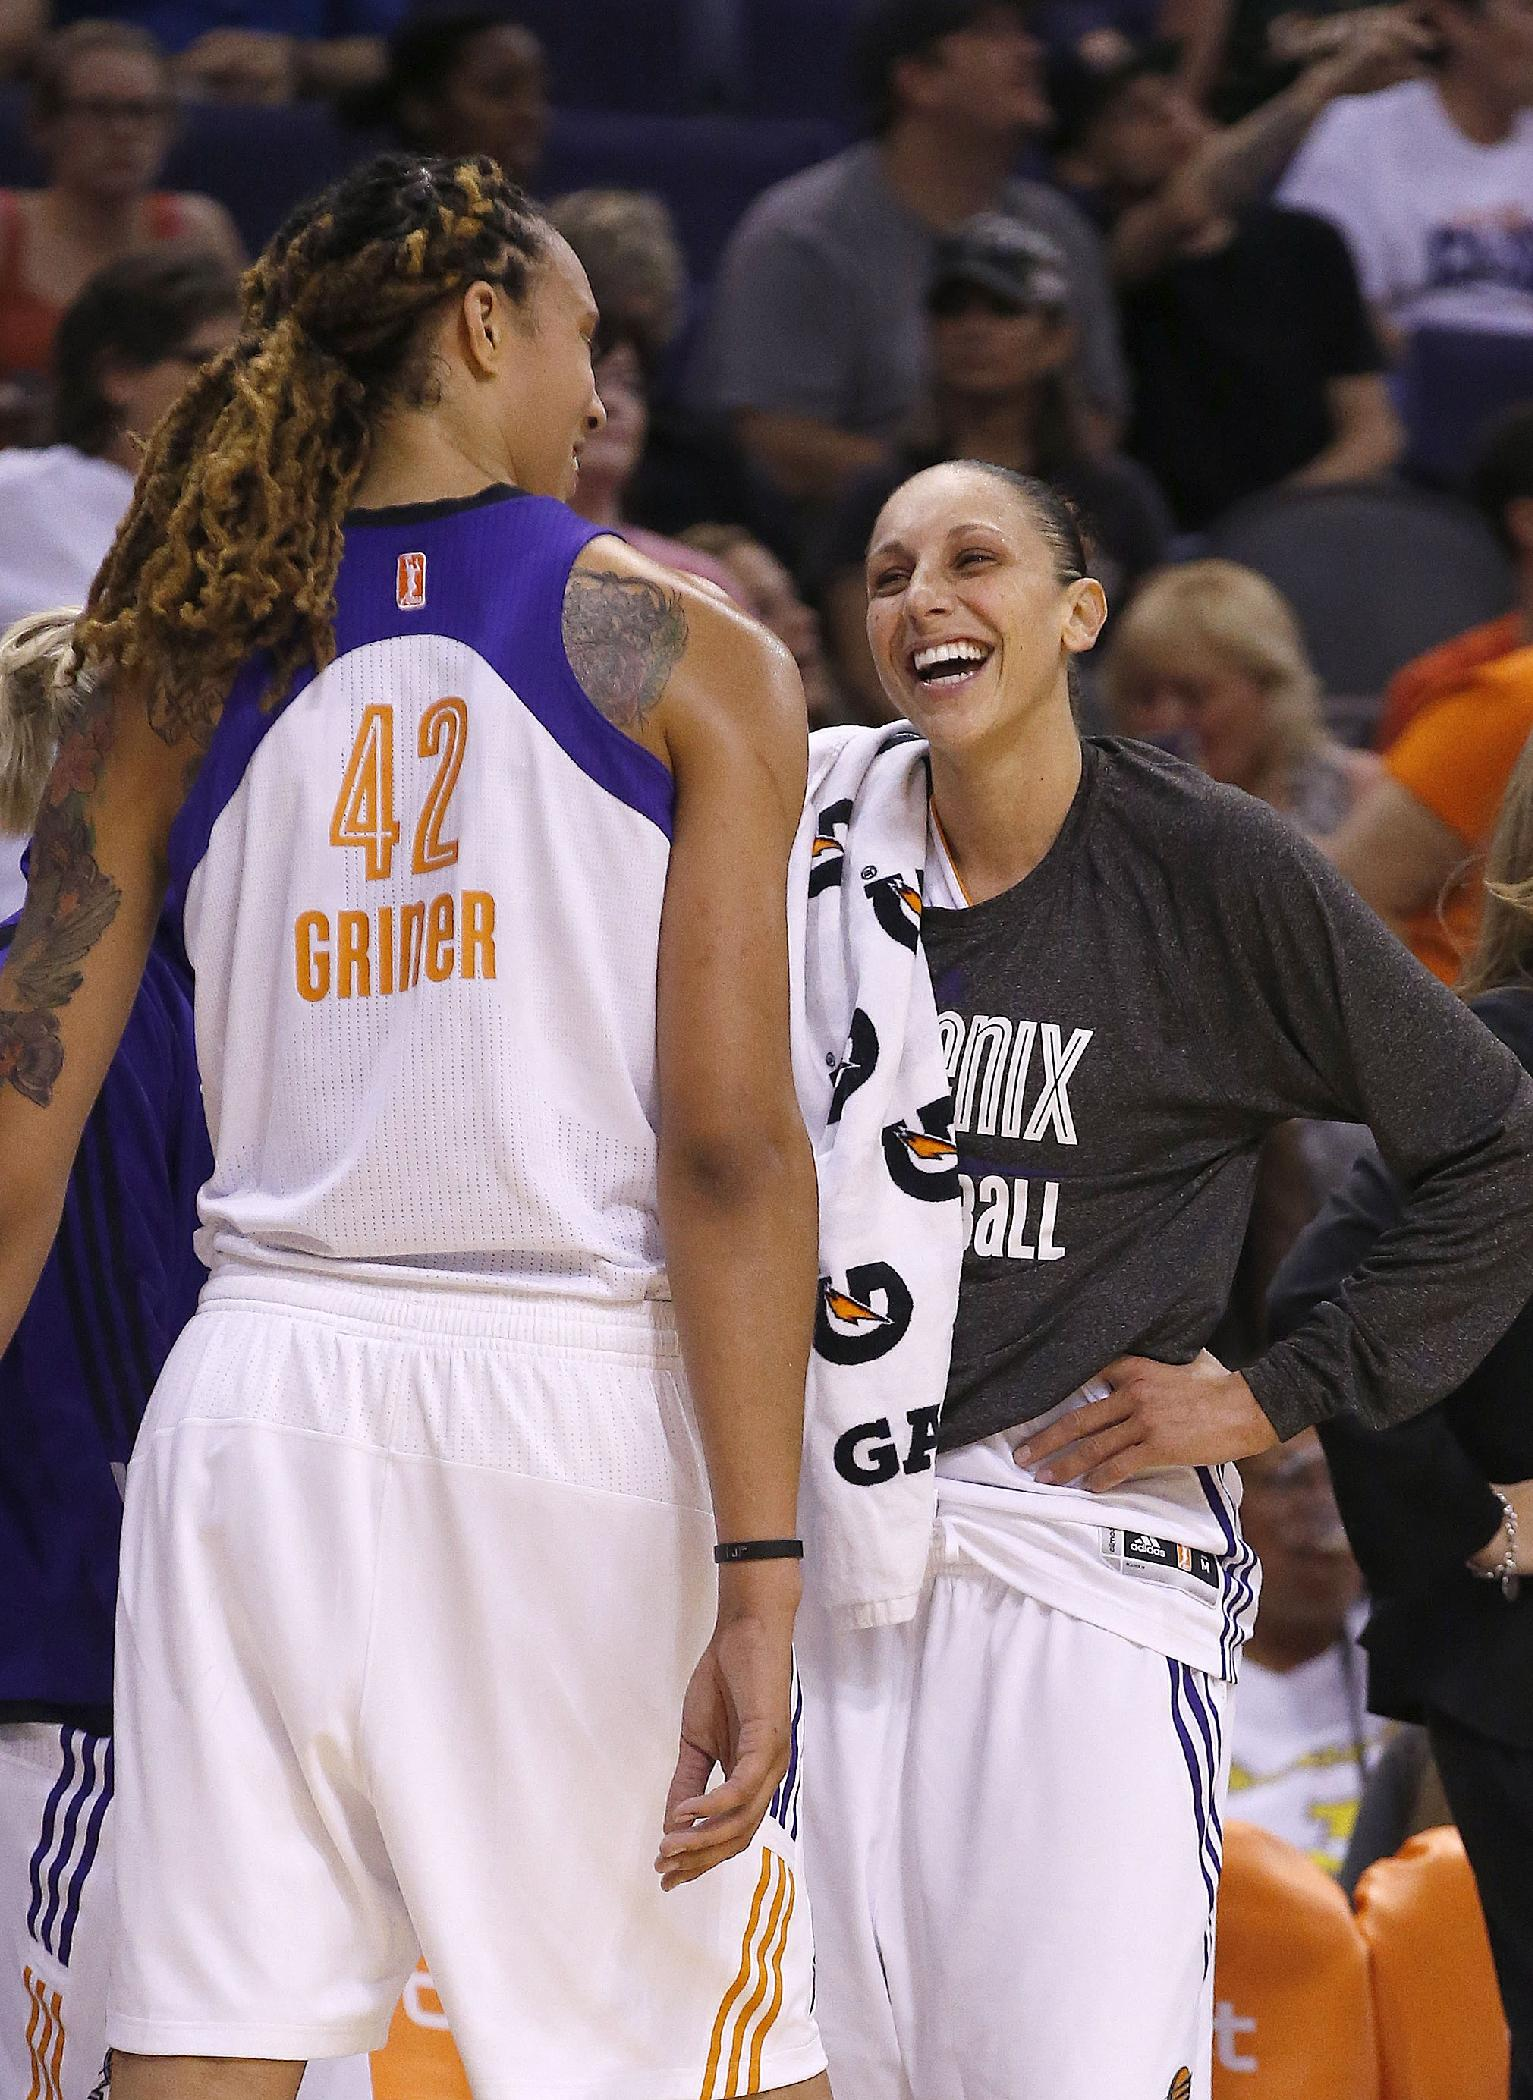 Phoenix Mercury's Diana Taurasi, right, and Brittney Griner (42) talk on the team bench in the closing moments of their win against the Seattle Storm during the second half of a WNBA basketball game on Tuesday, June 3, 2014, in Phoenix